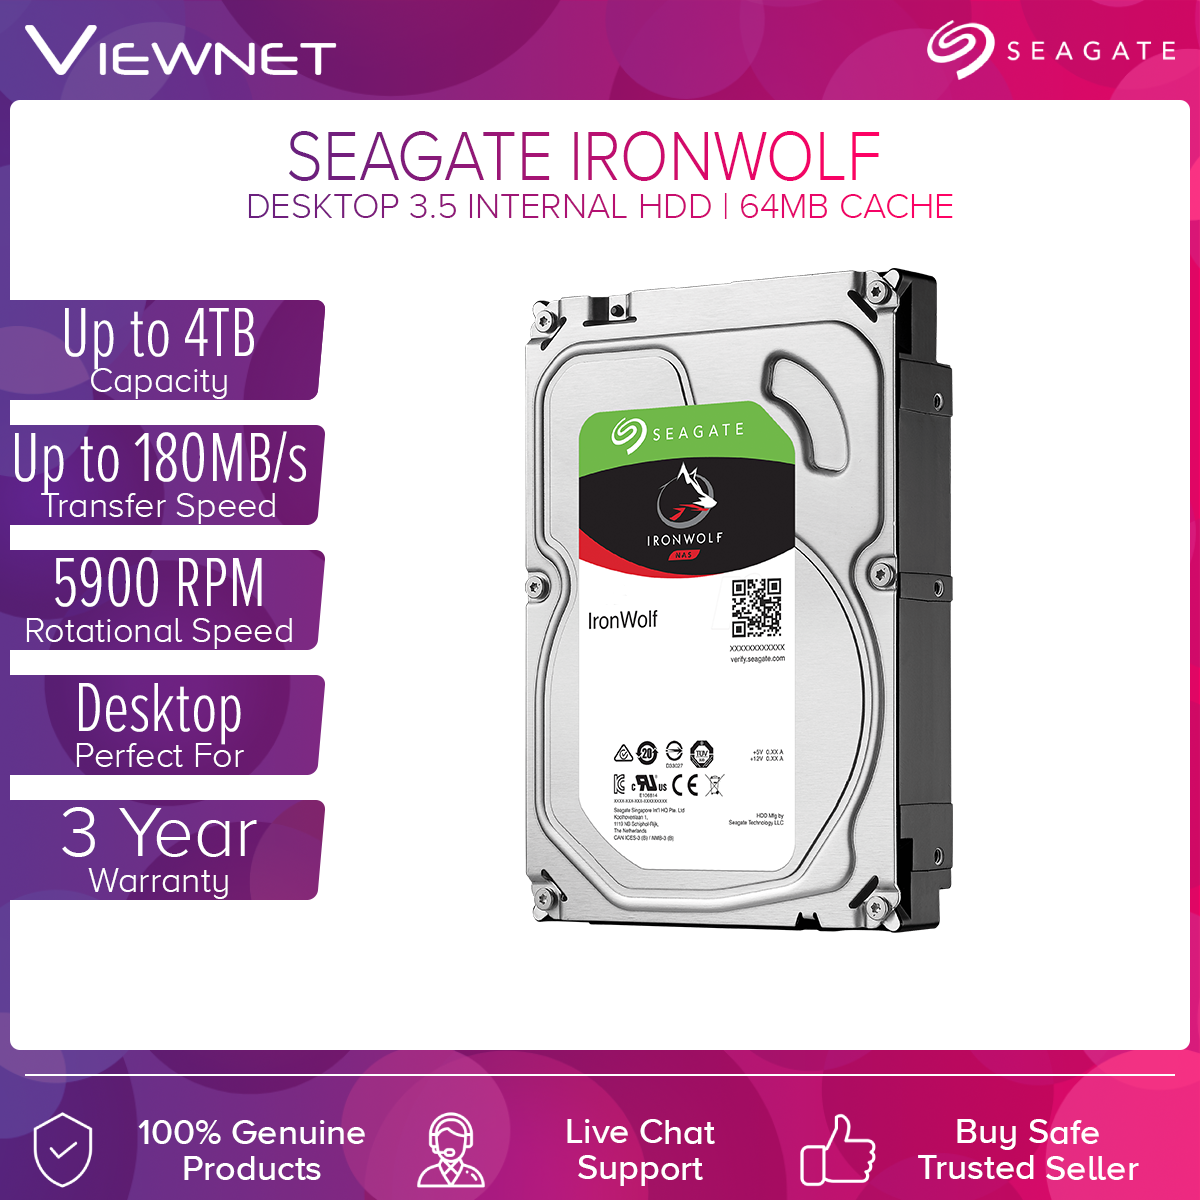 Seagate Ironwolf 1TB/2TB/3TB/4TB Internal Hard Drive - 5900RPM SATA 6Gb/s 64MB Cache 3.5